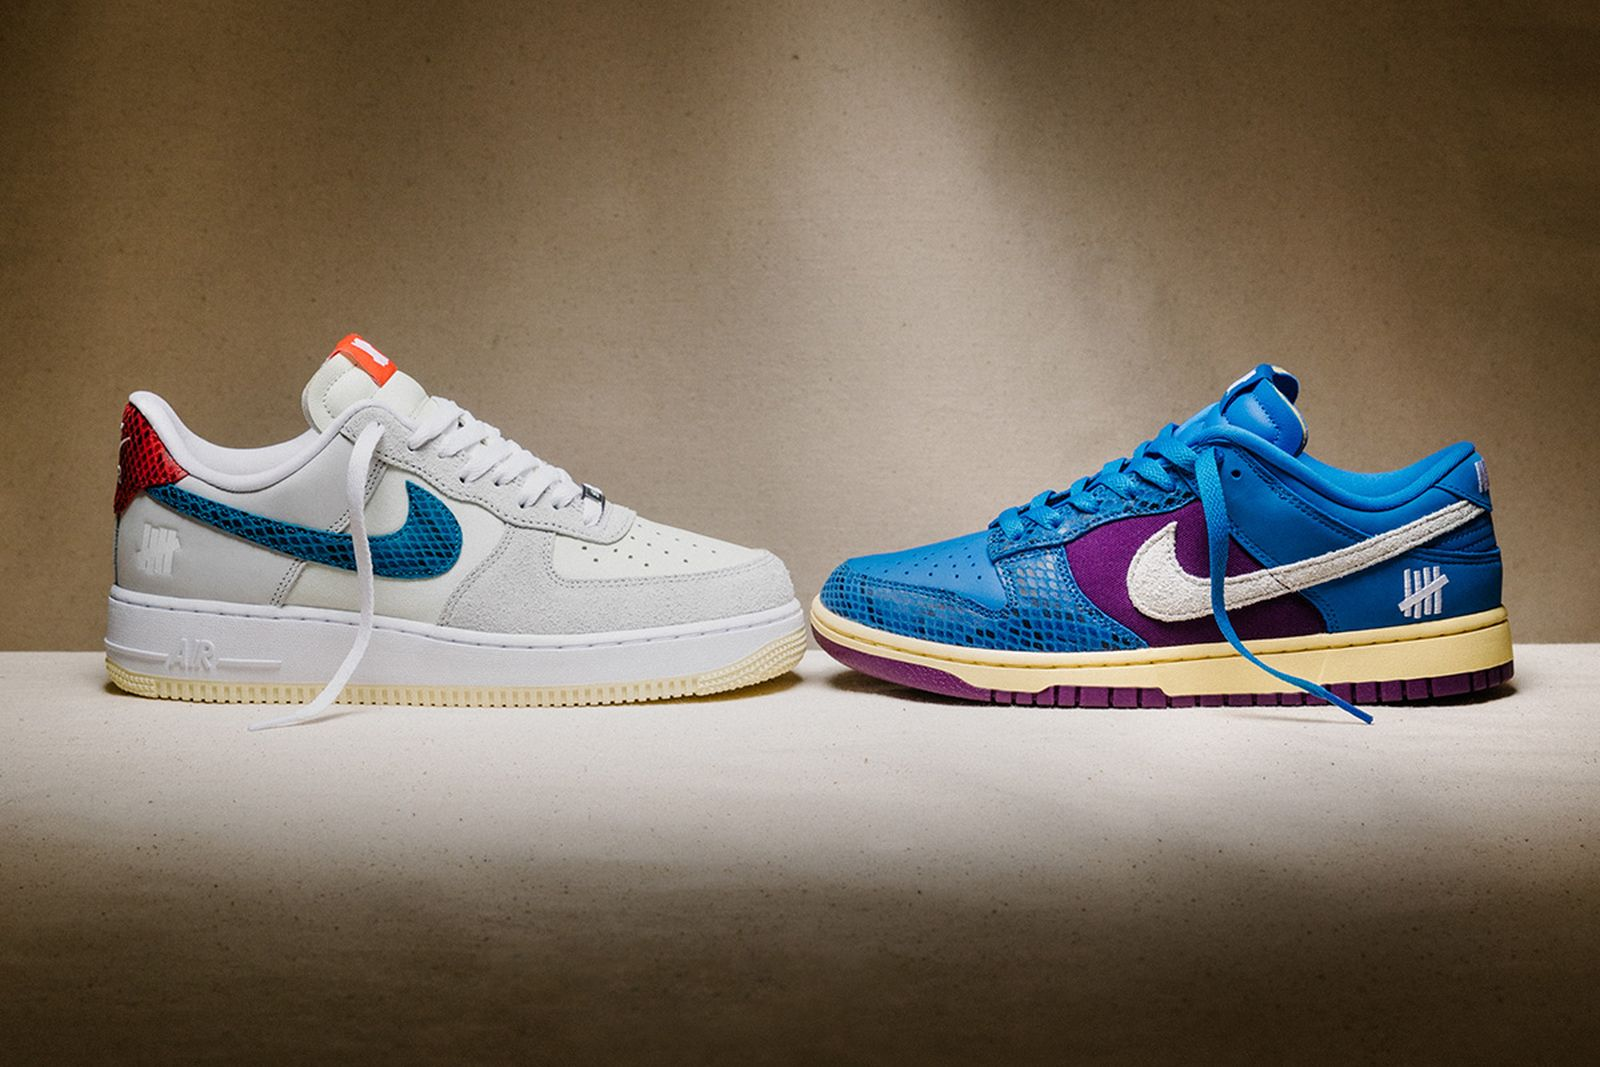 UNDEFEATED Nike Dunk vs. Air Force 1